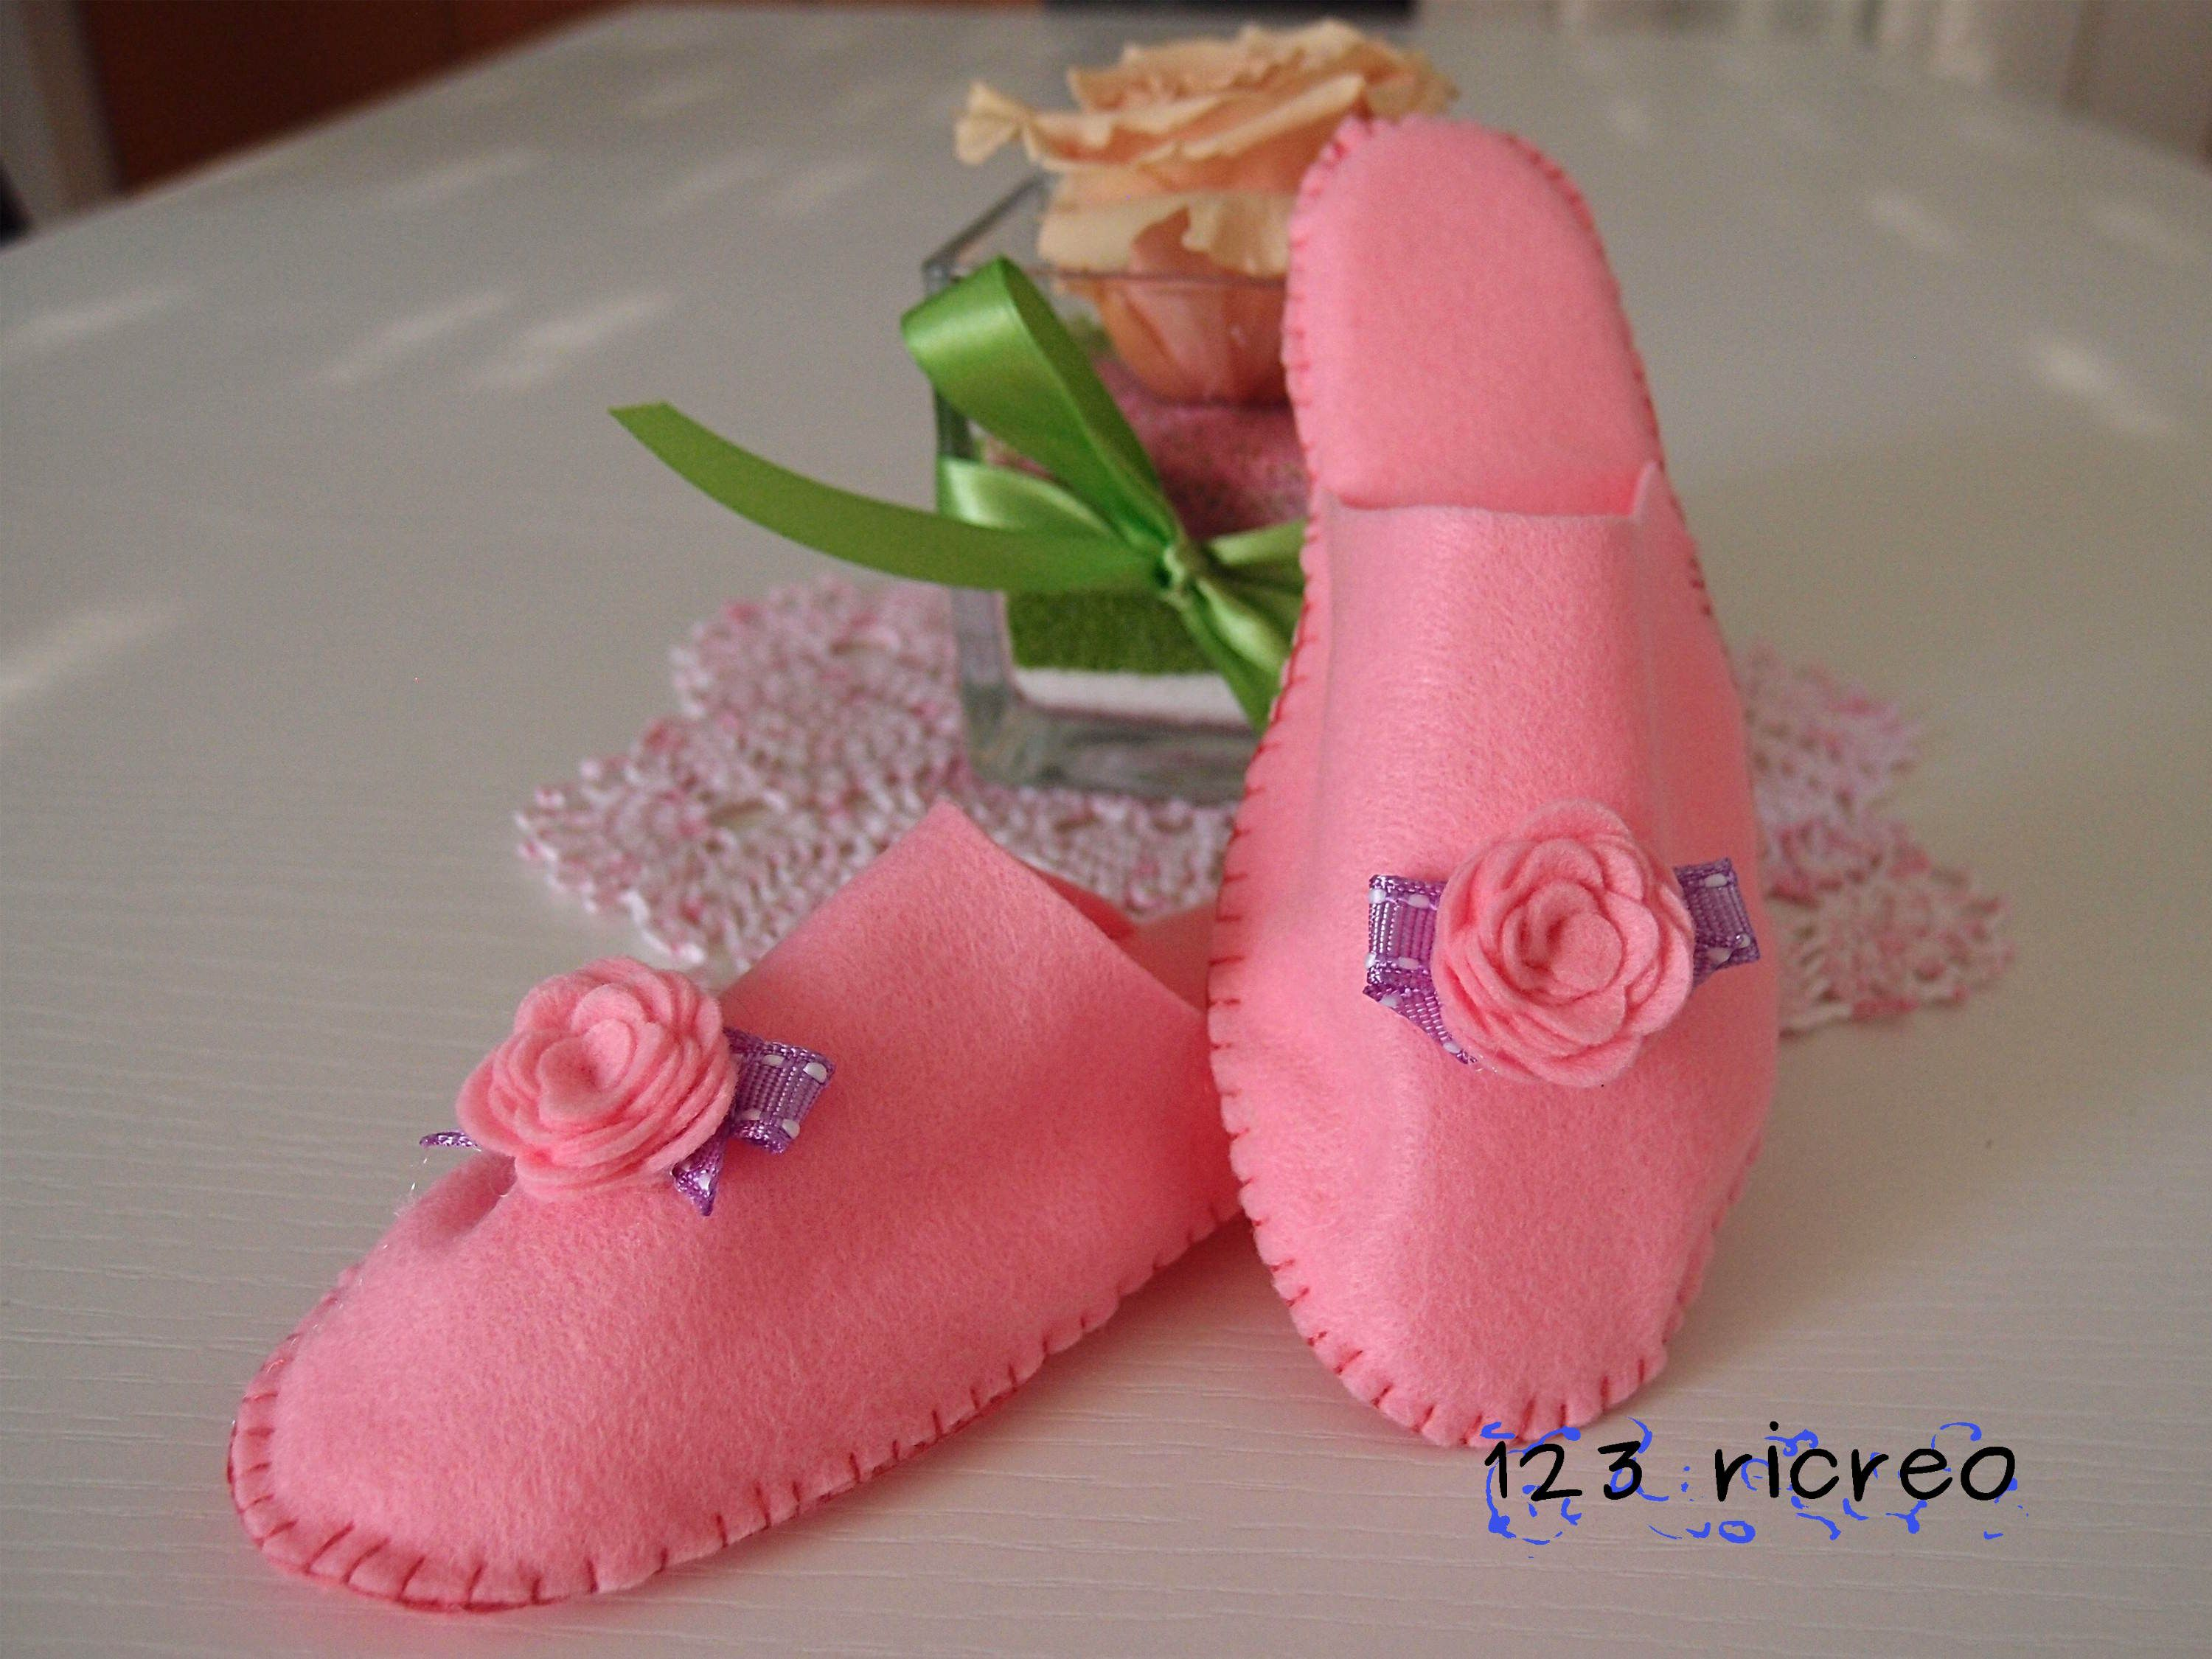 Photo of pantofole per bambina in pannolenci rosa – #bambini #pantofole